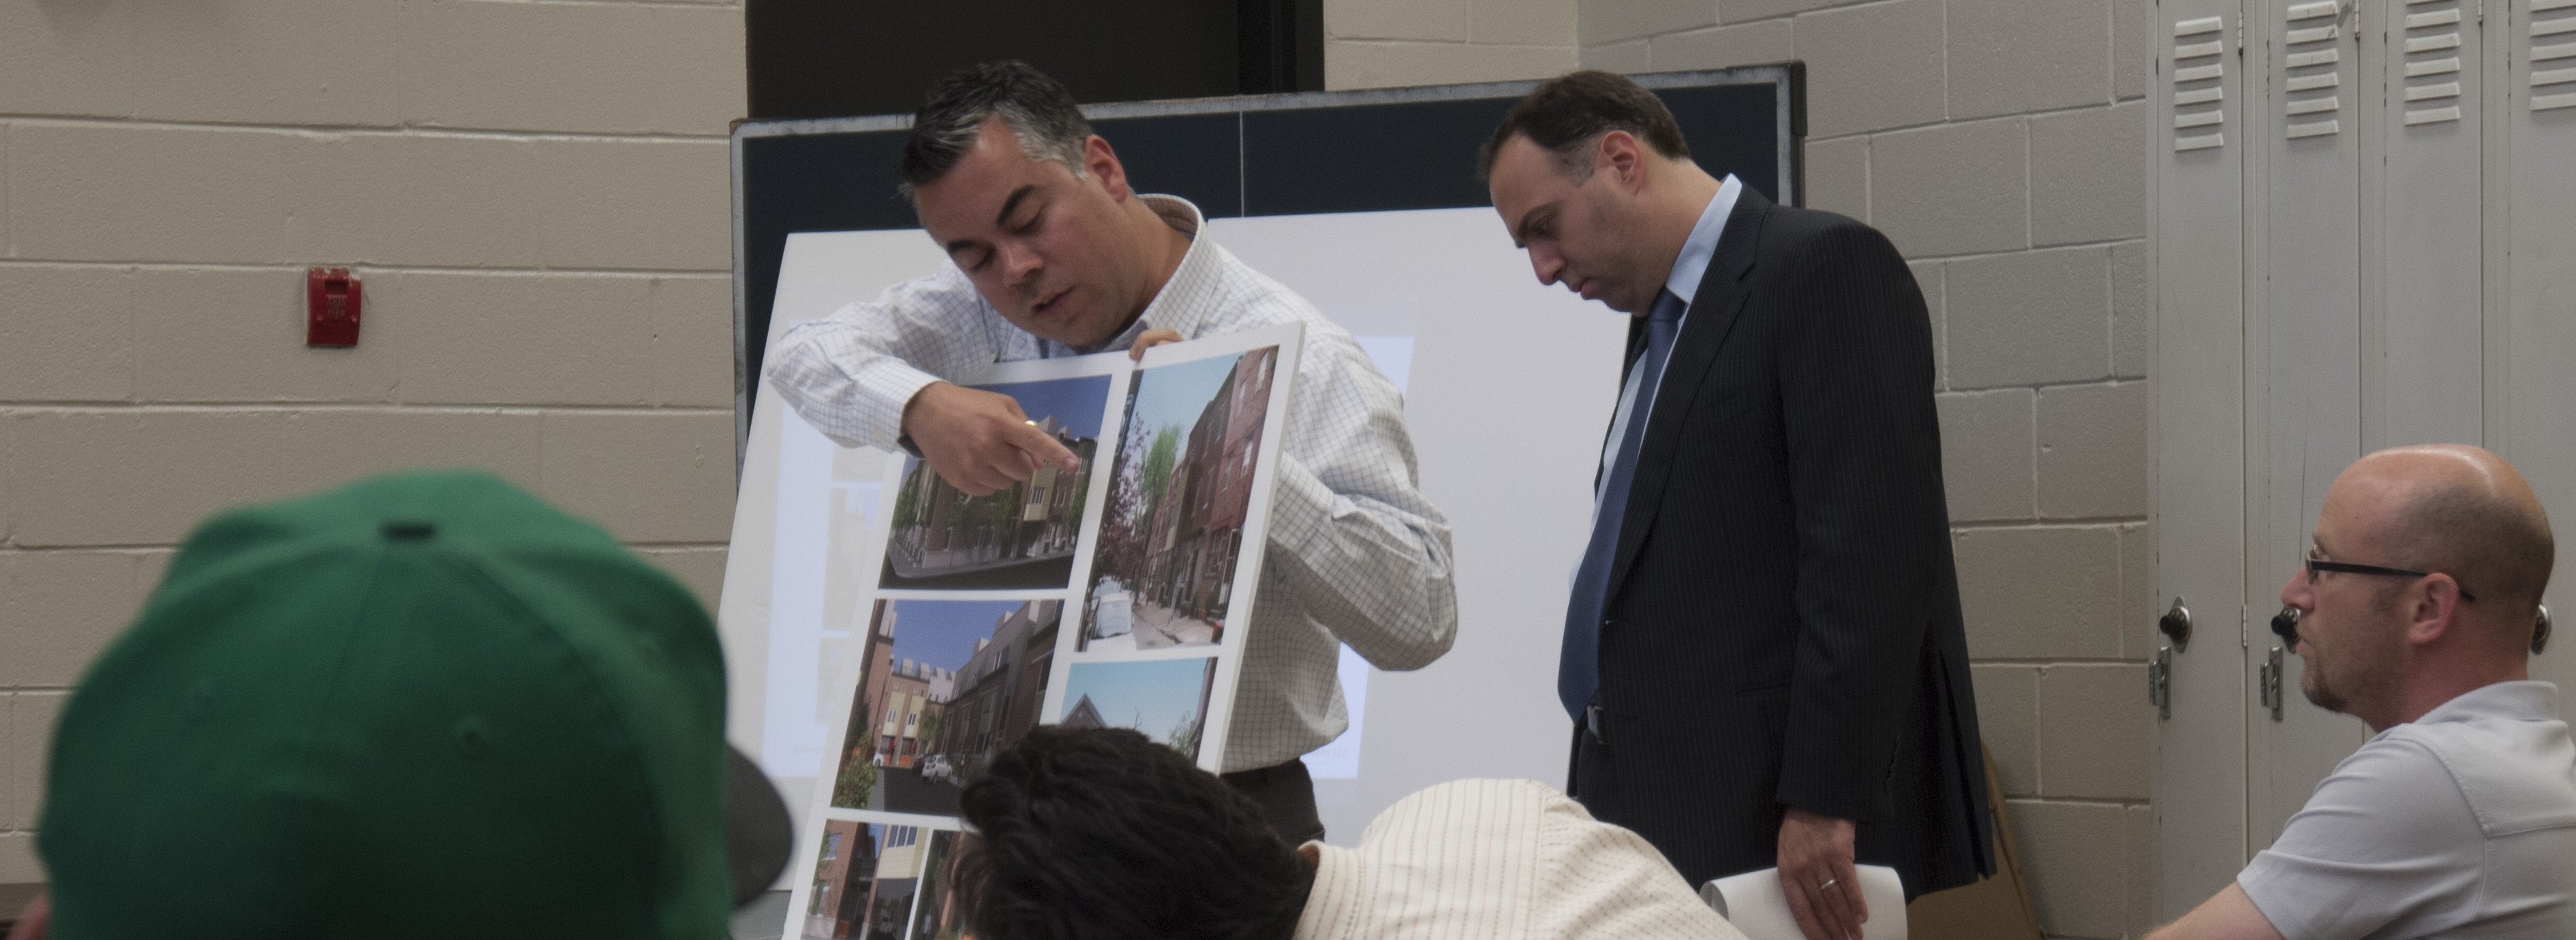 Representatives from U.S. Construction Incorporated and JKR Partners show construction plans for new townhouses in Bella Vista